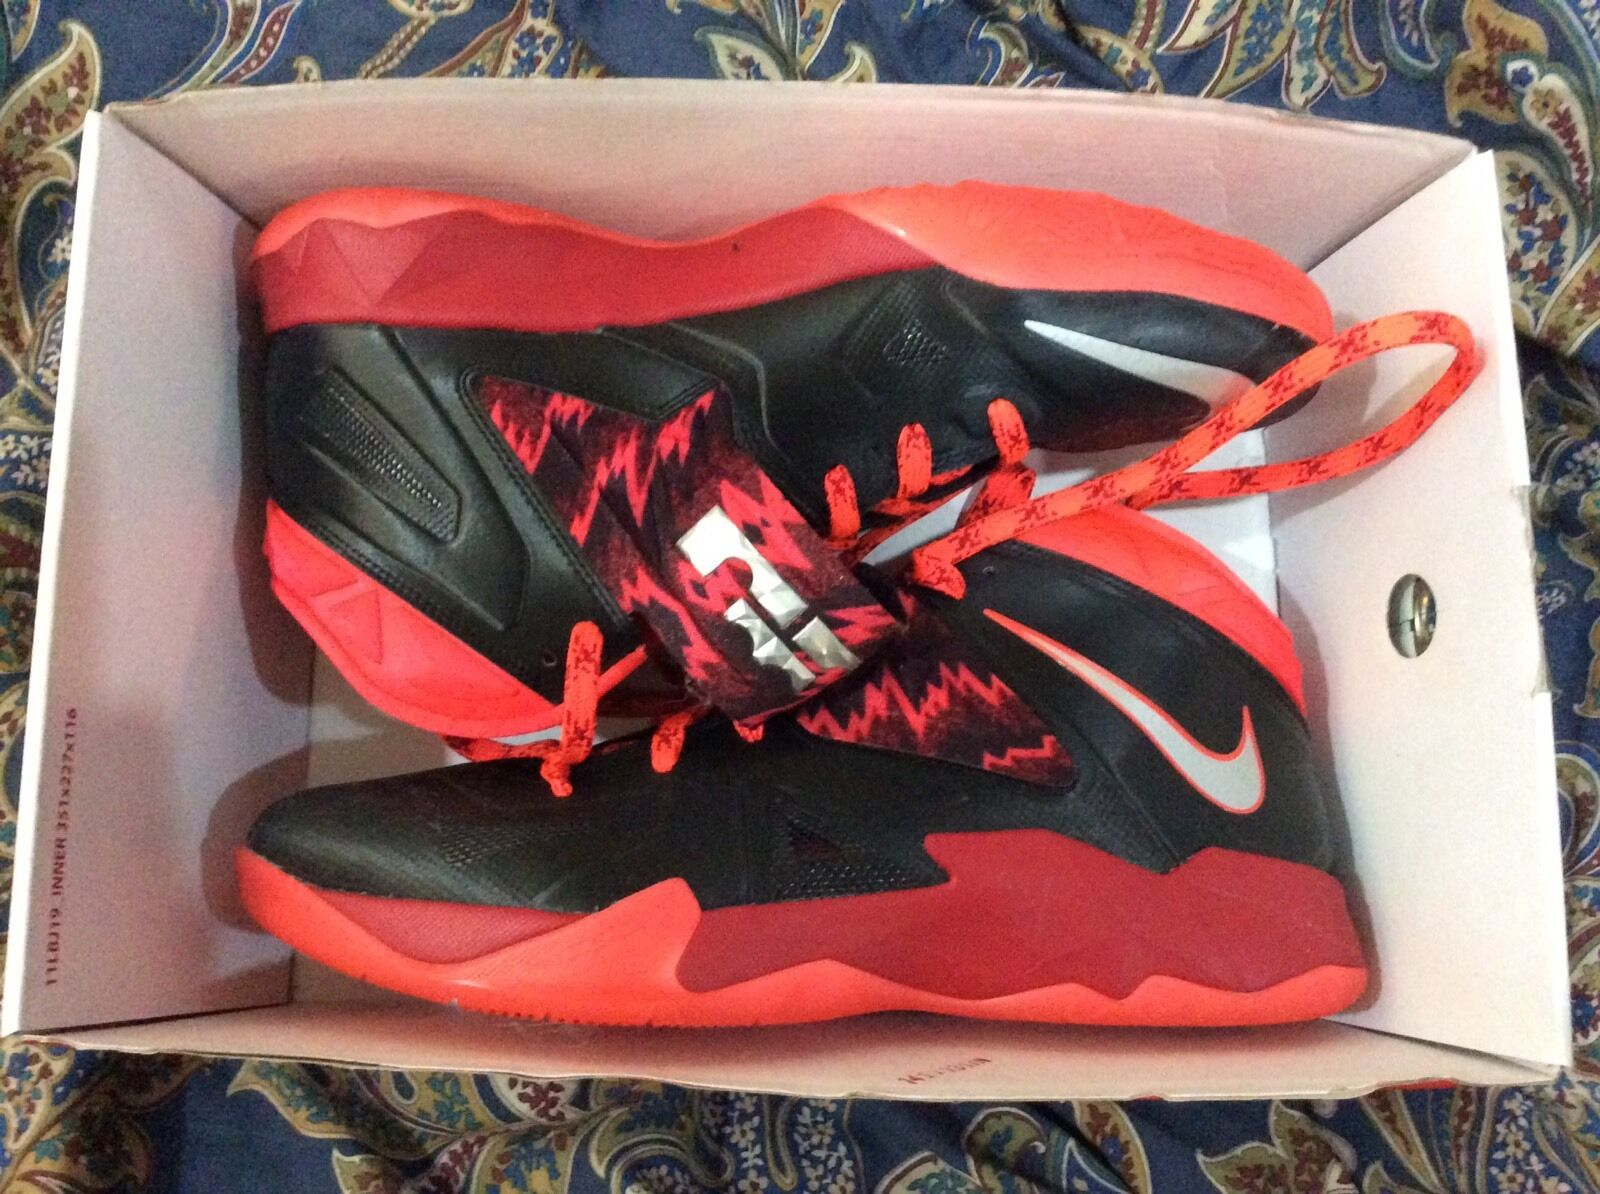 New Nike LeBron Solder VII Blk/Red/Slvr Comfortable Wild casual shoes